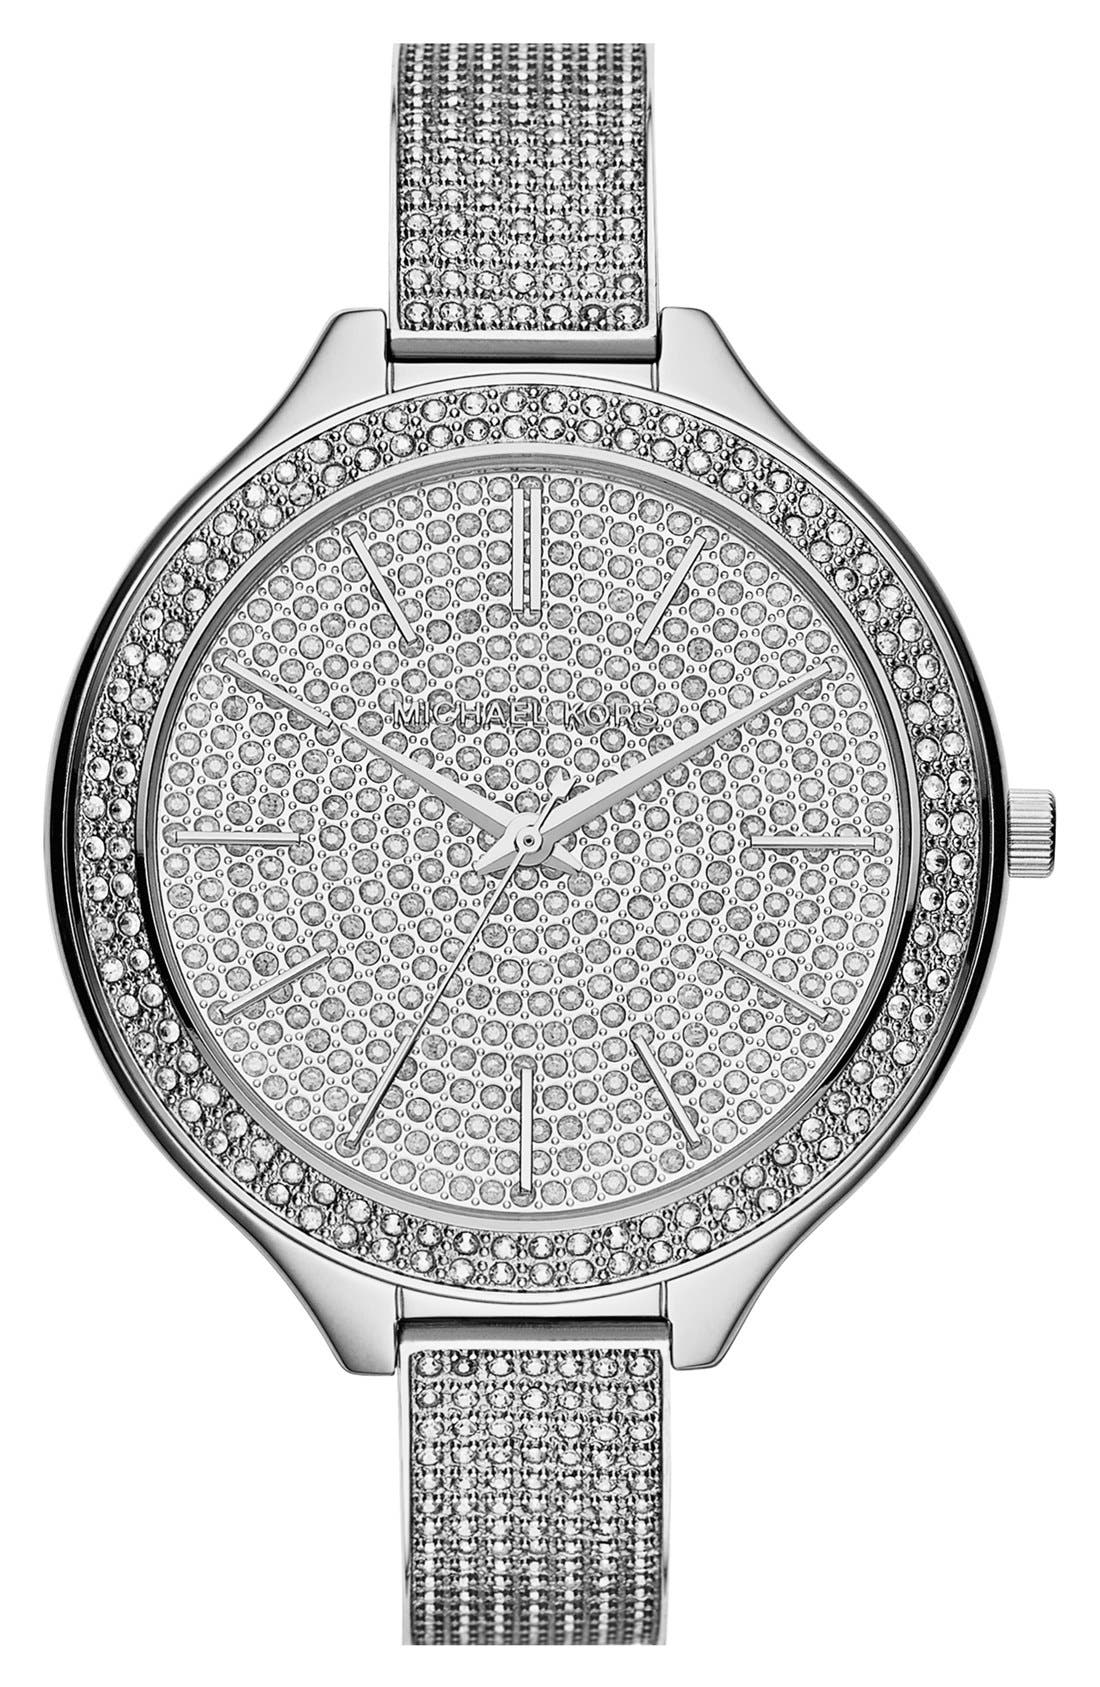 Alternate Image 1 Selected - Michael Kors 'Slim Runway' Pavé Crystal Bangle Watch, 43mm